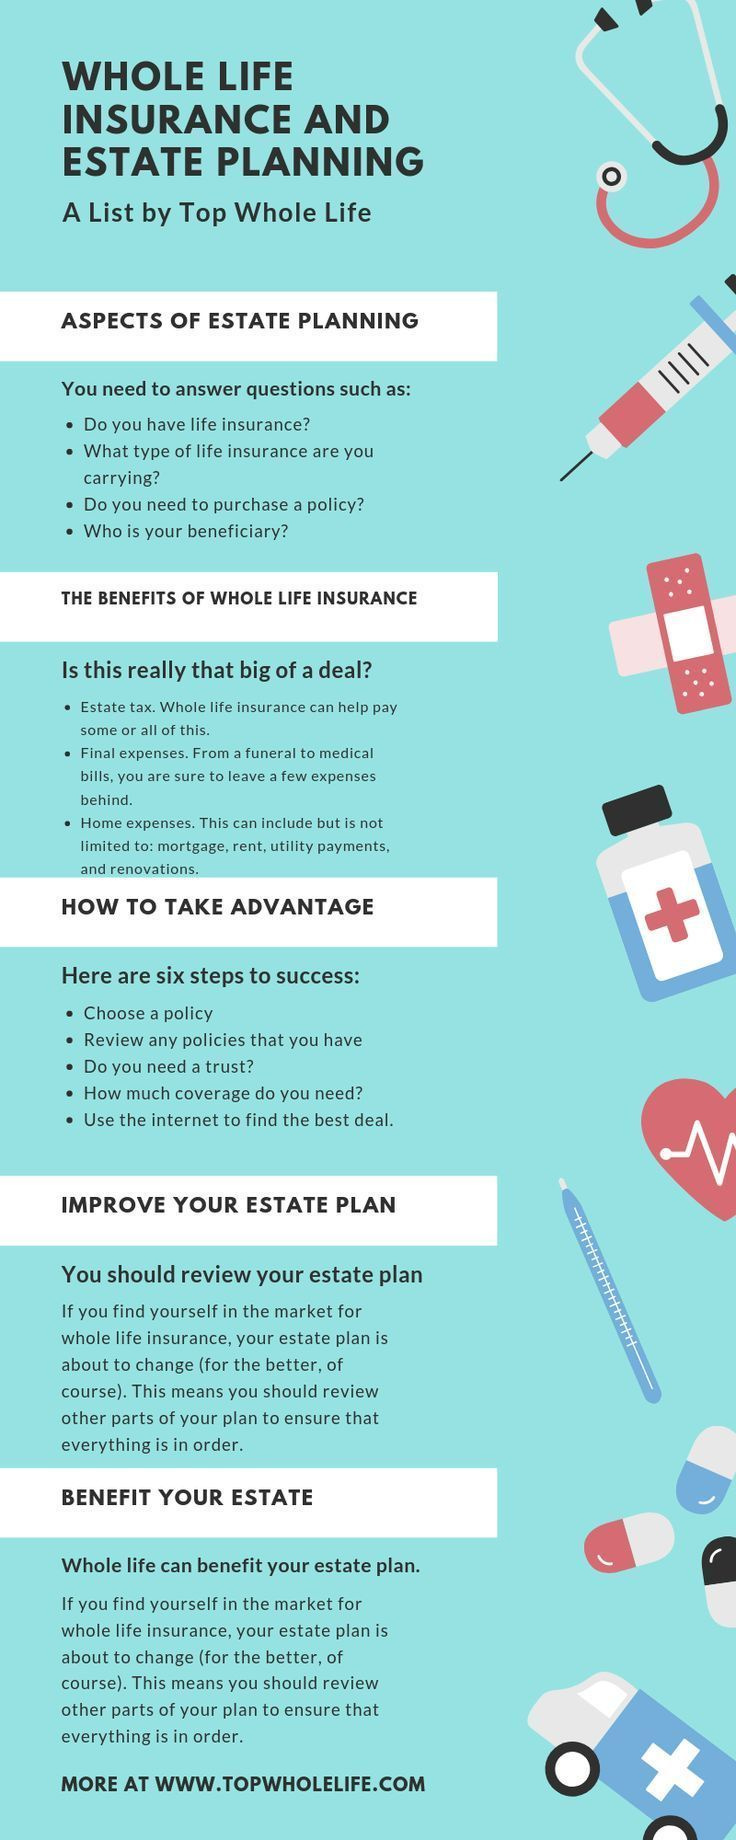 Whole Life Insurance and Estate Planning | Whole life ...